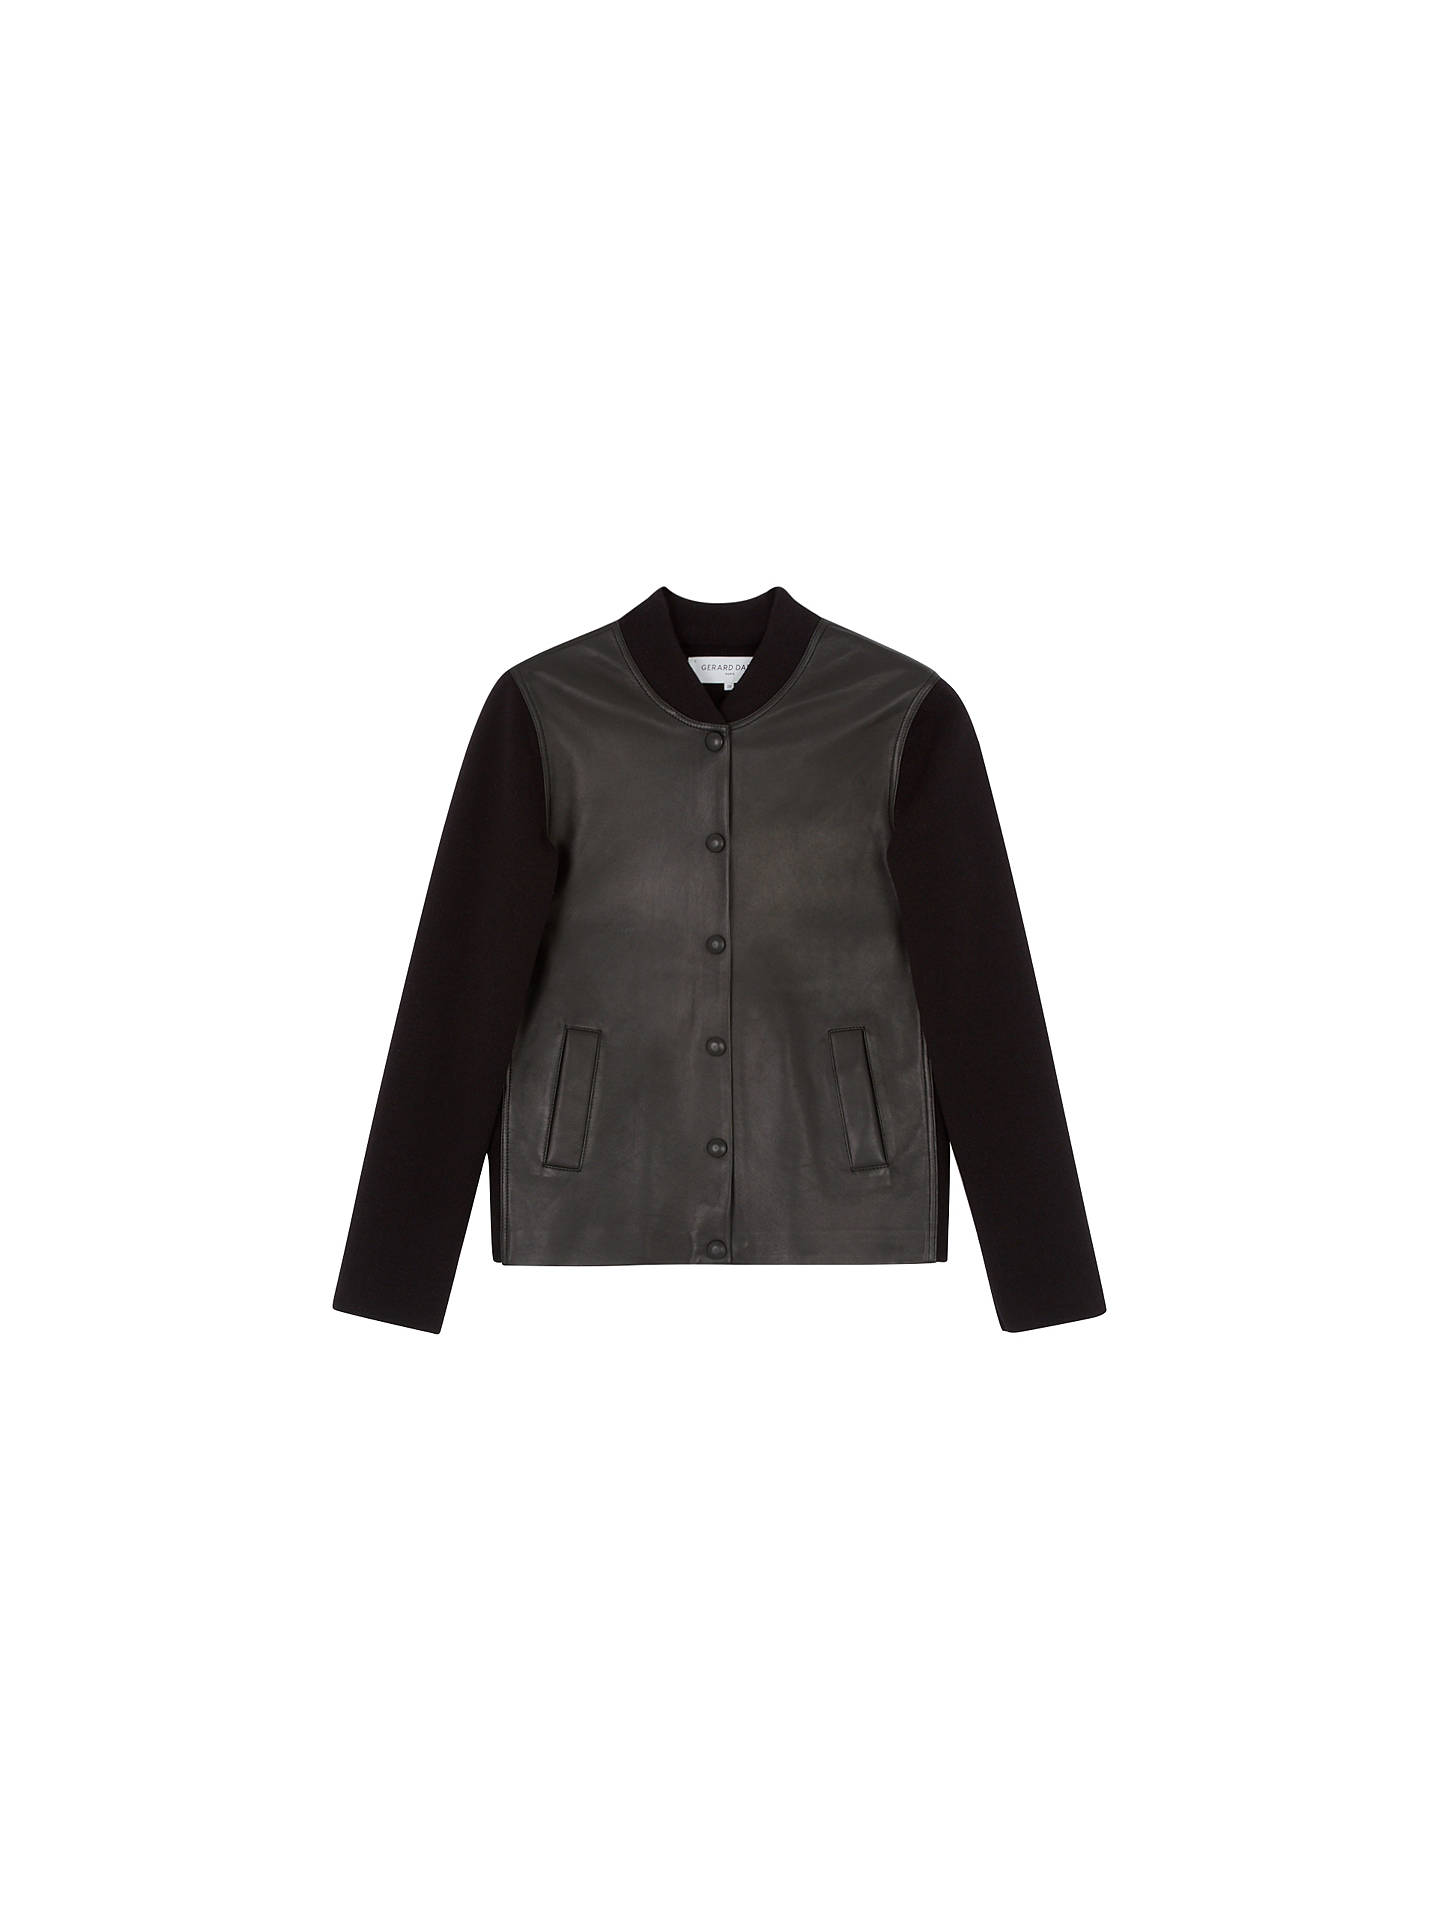 BuyGerard Darel Orso Leather Bomber Jacket, Black, 6 Online at johnlewis.com